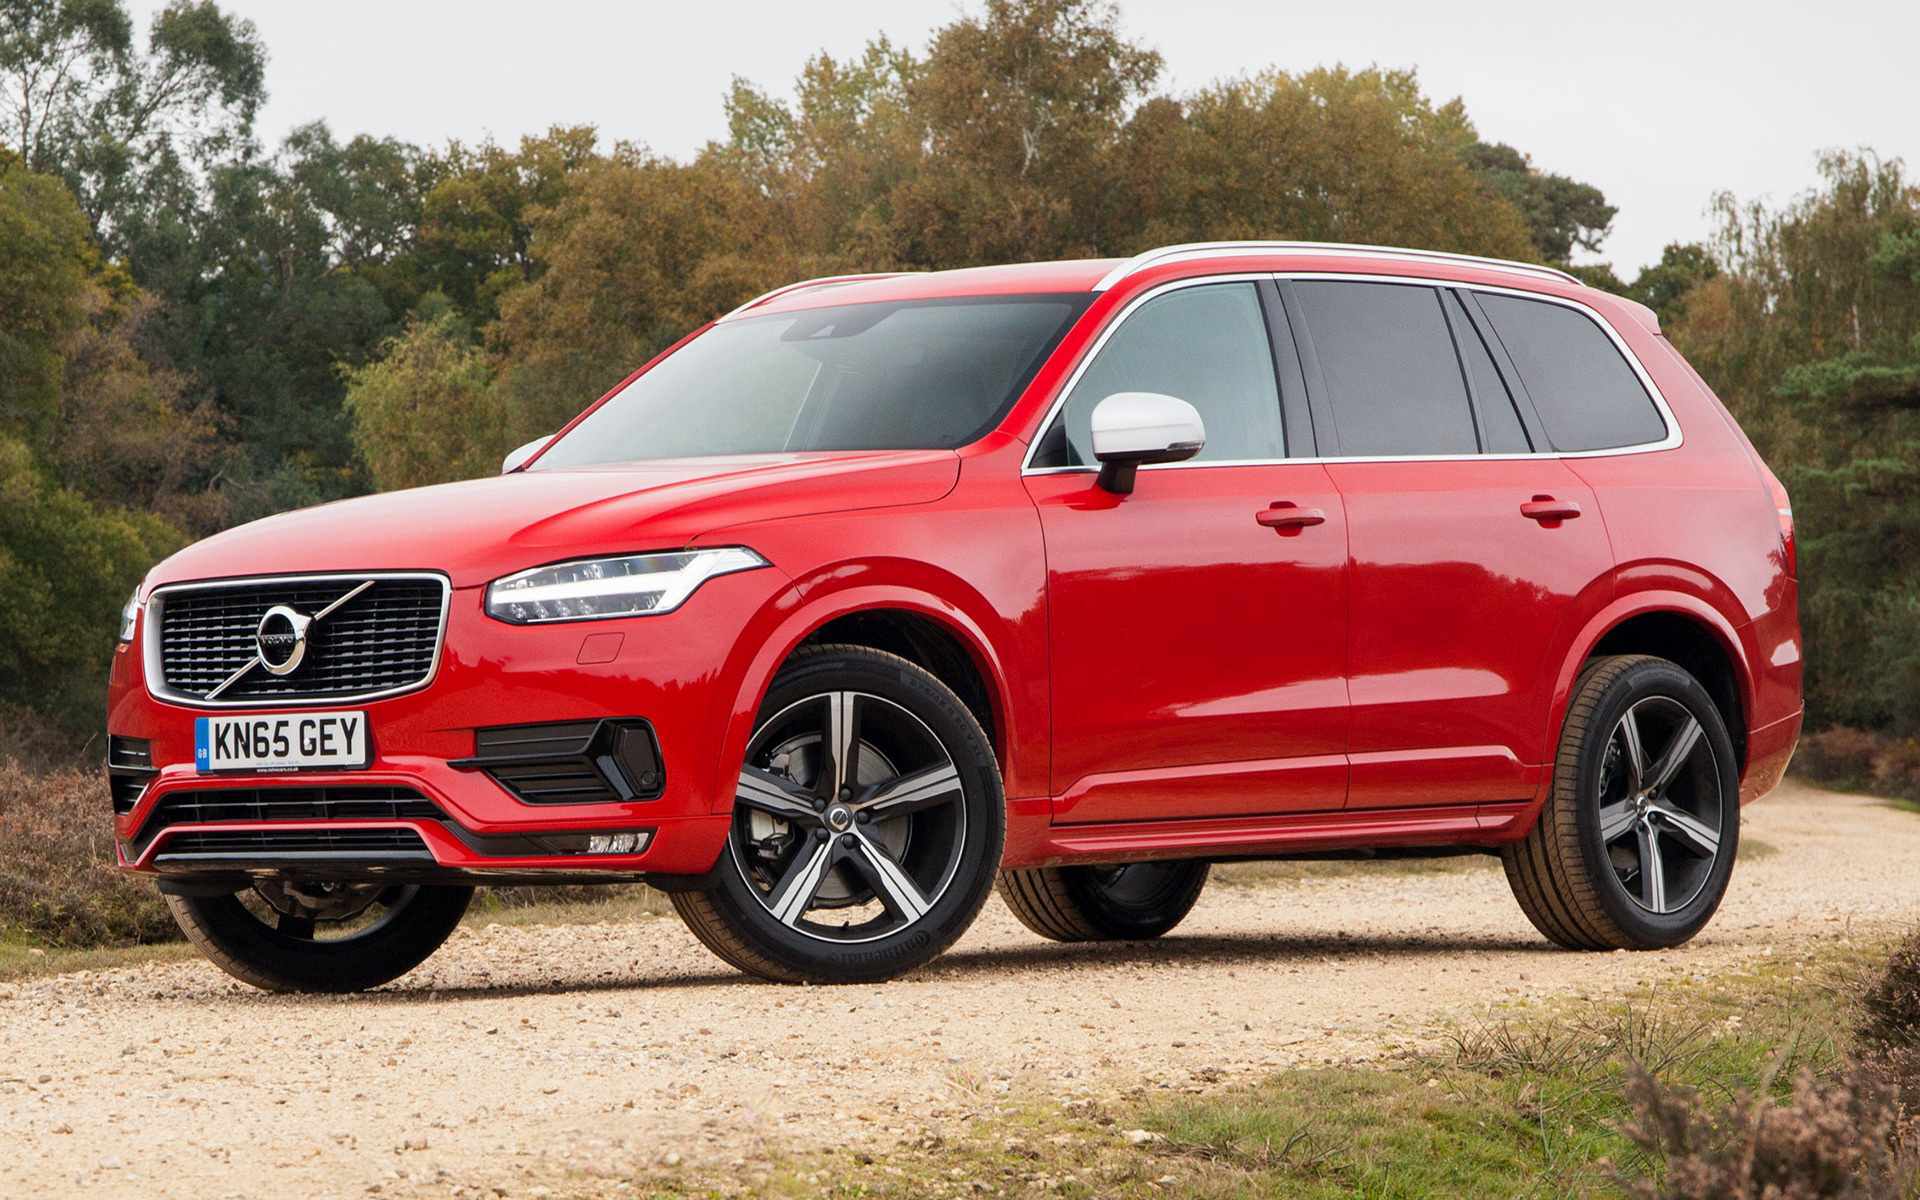 volvo xc90 rdesign 2015 uk wallpapers and hd images